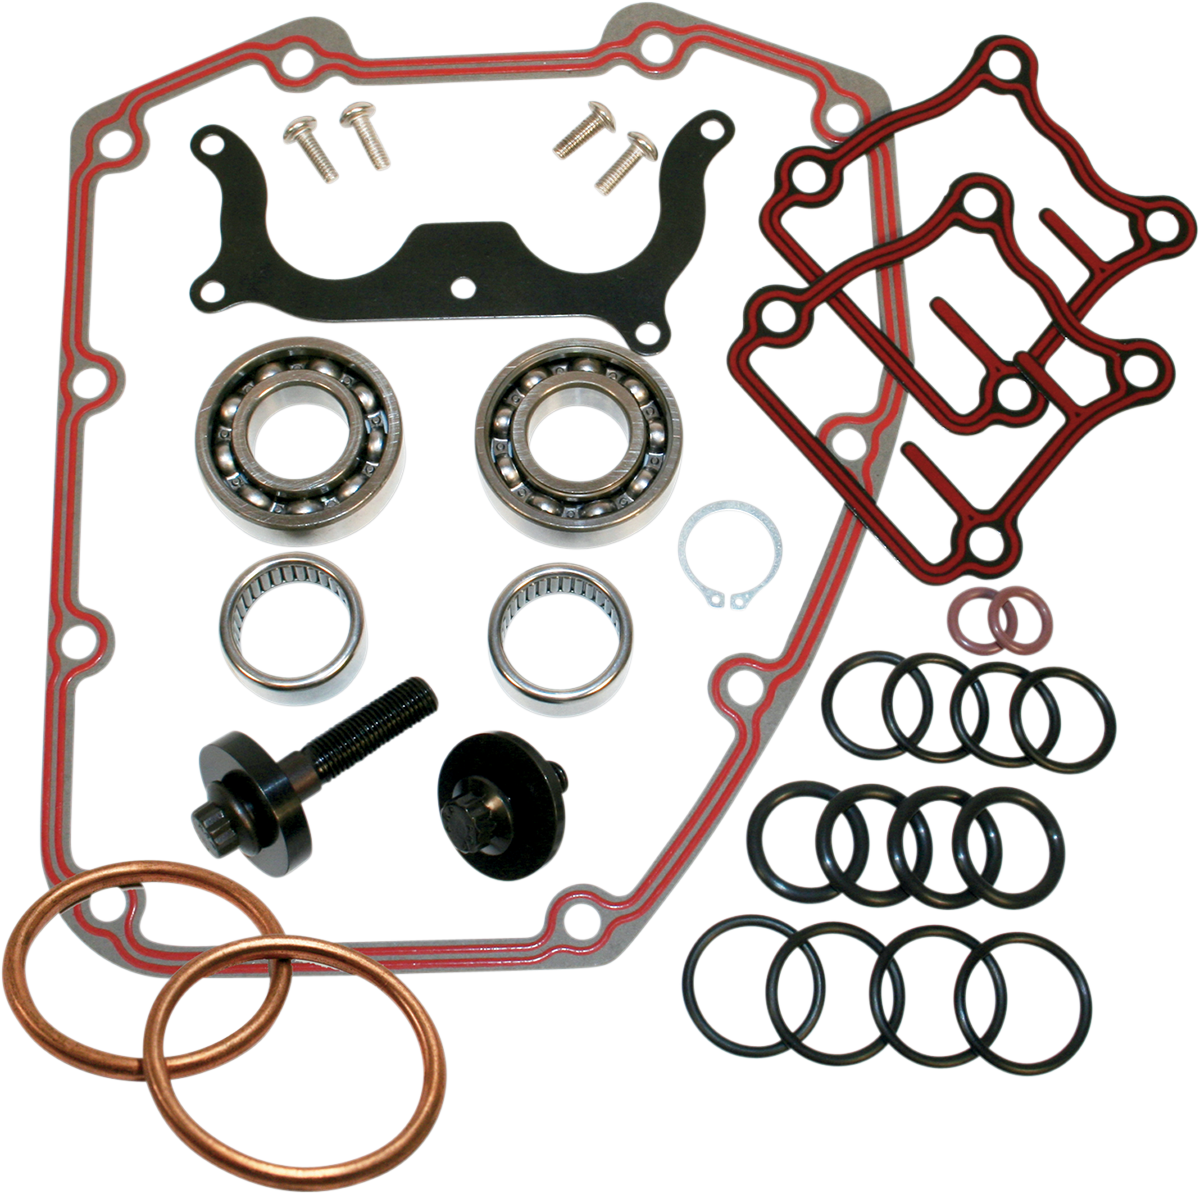 Feuling Gear Drive Camshaft Installation Kit for 99-06 Harley Dyna Touring FXST